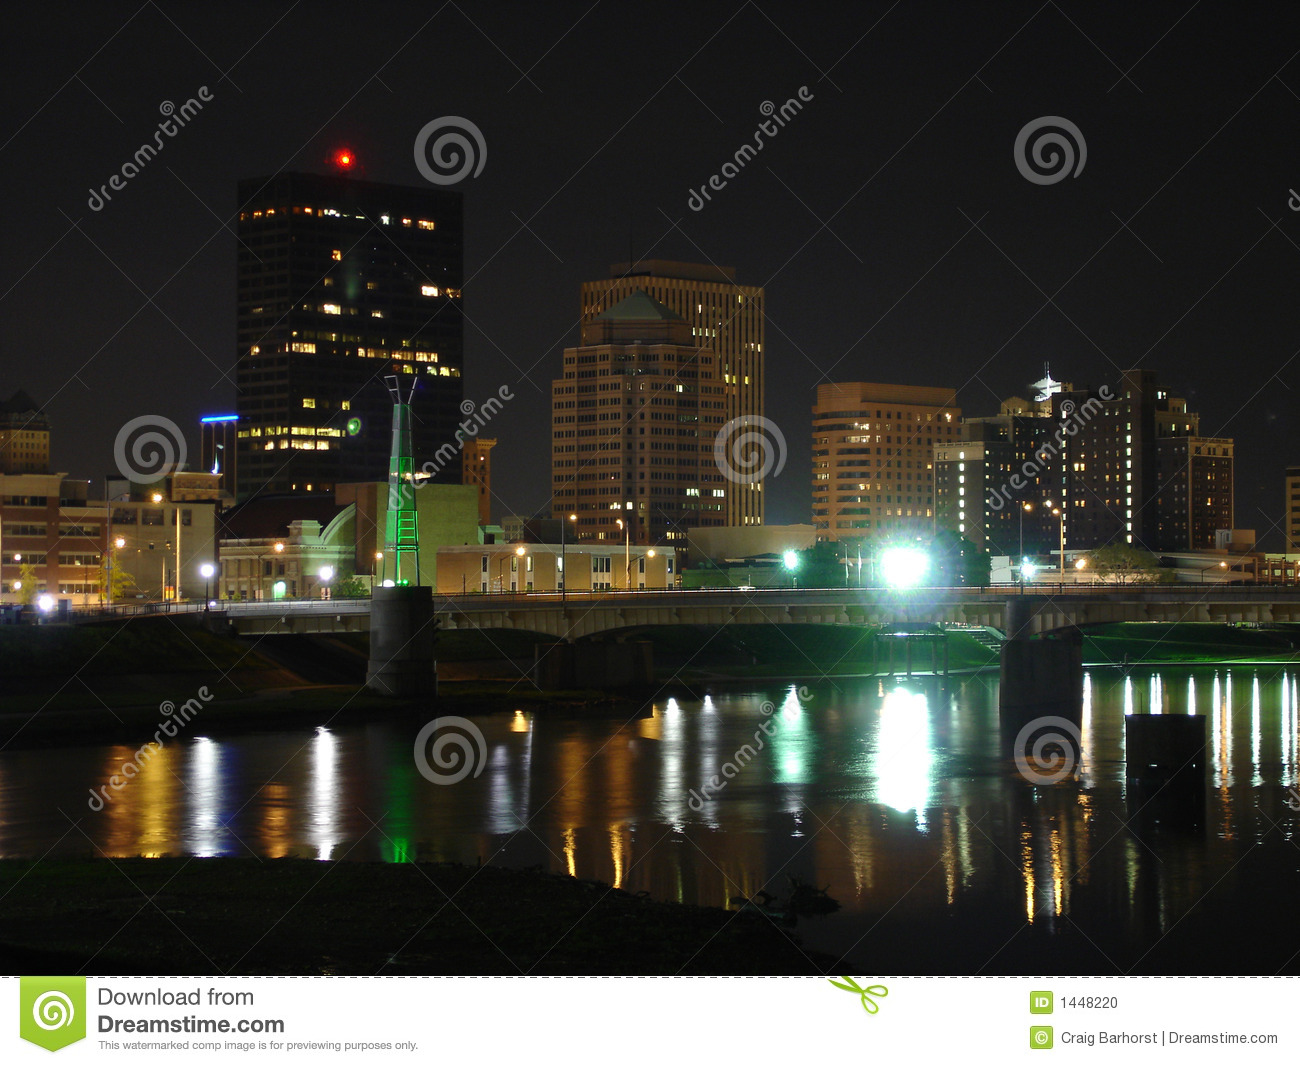 dayton ohio skyline at night by river